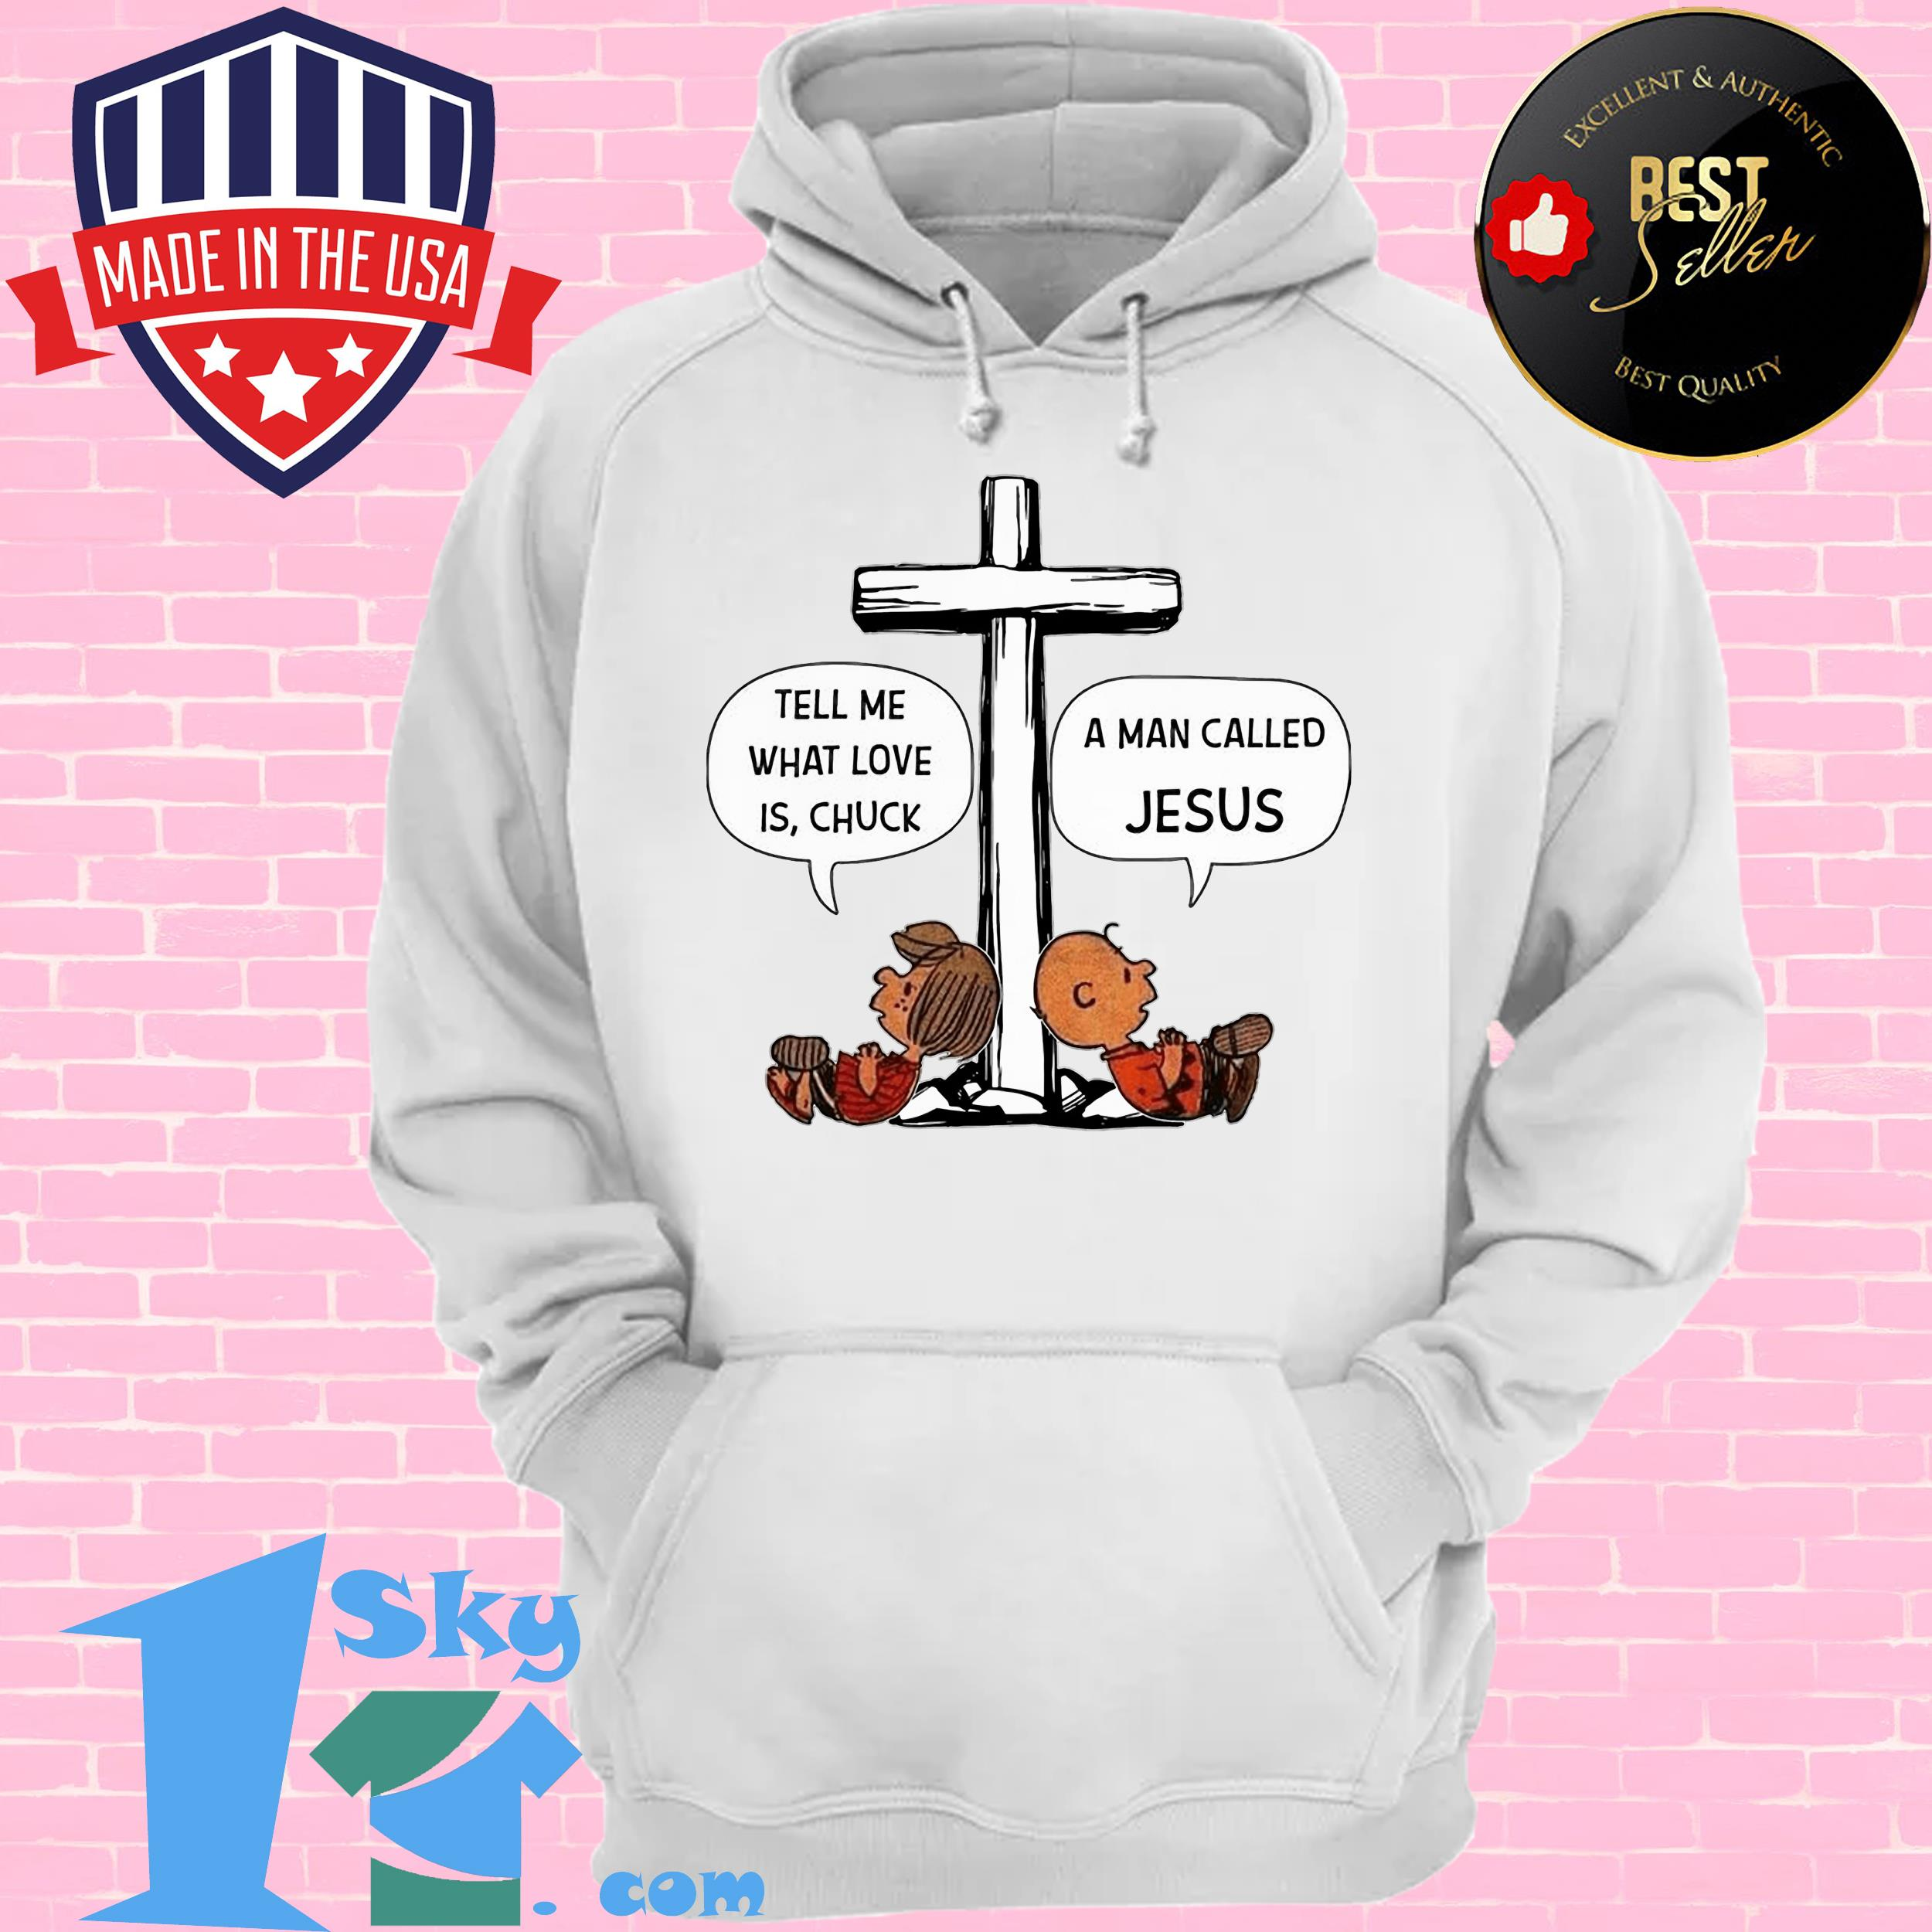 charlie brown tell me what love is chuck a man called jesus hoodie - Charlie Brown Tell me what love is chuck a man called Jesus shirt